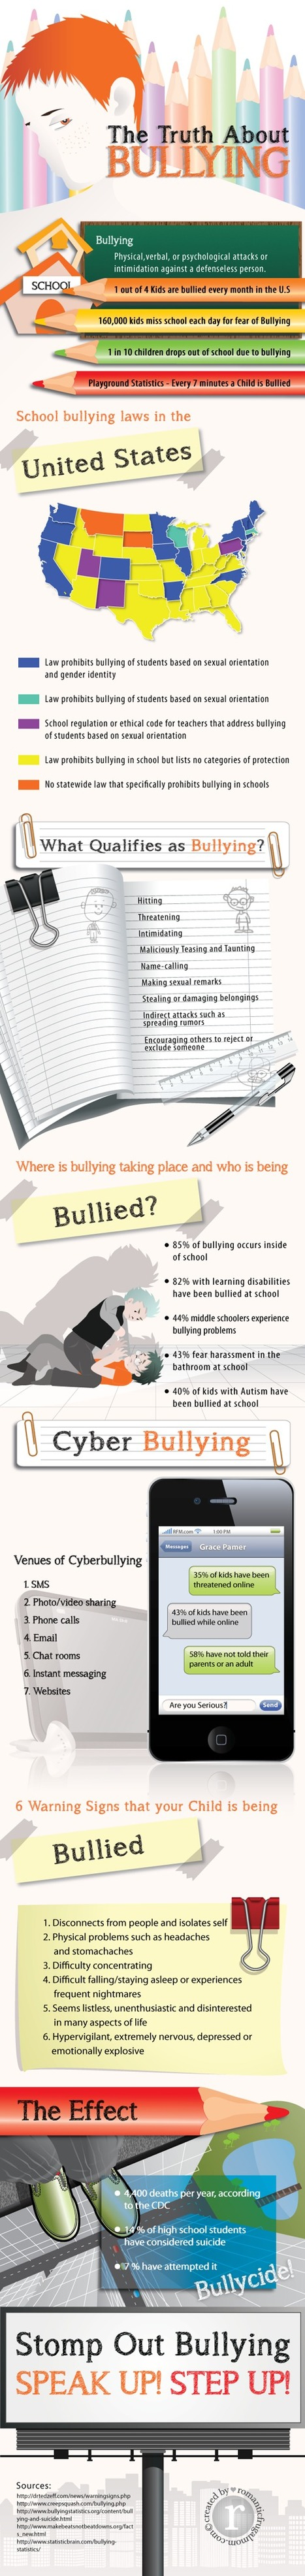 What you Should Know about Bullying | Representando el conocimiento | Scoop.it